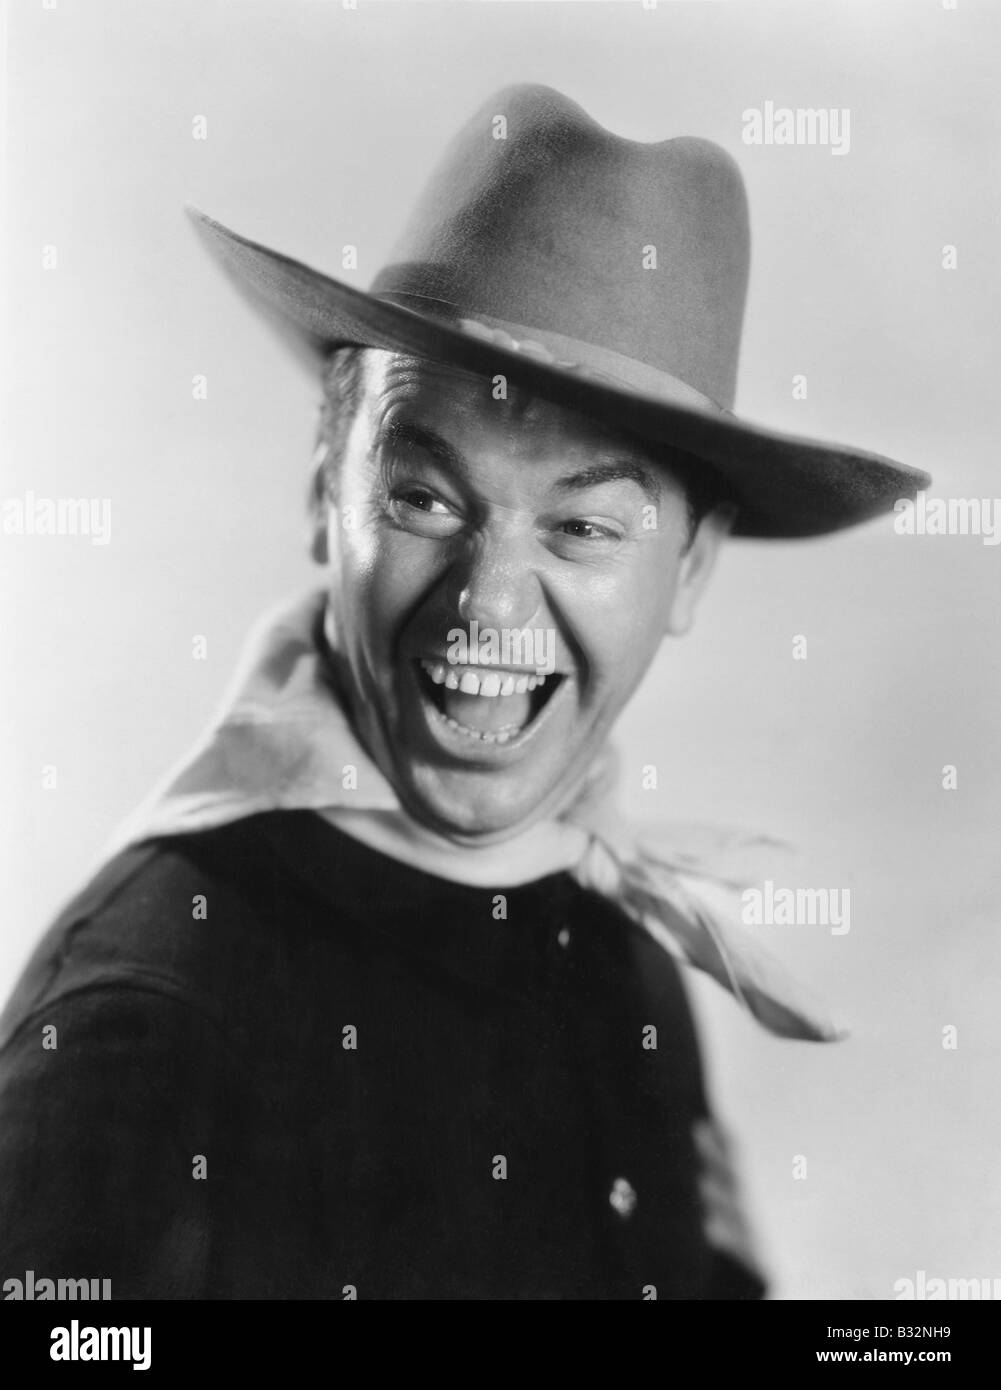 Enthusiastic cowboy - Stock Image